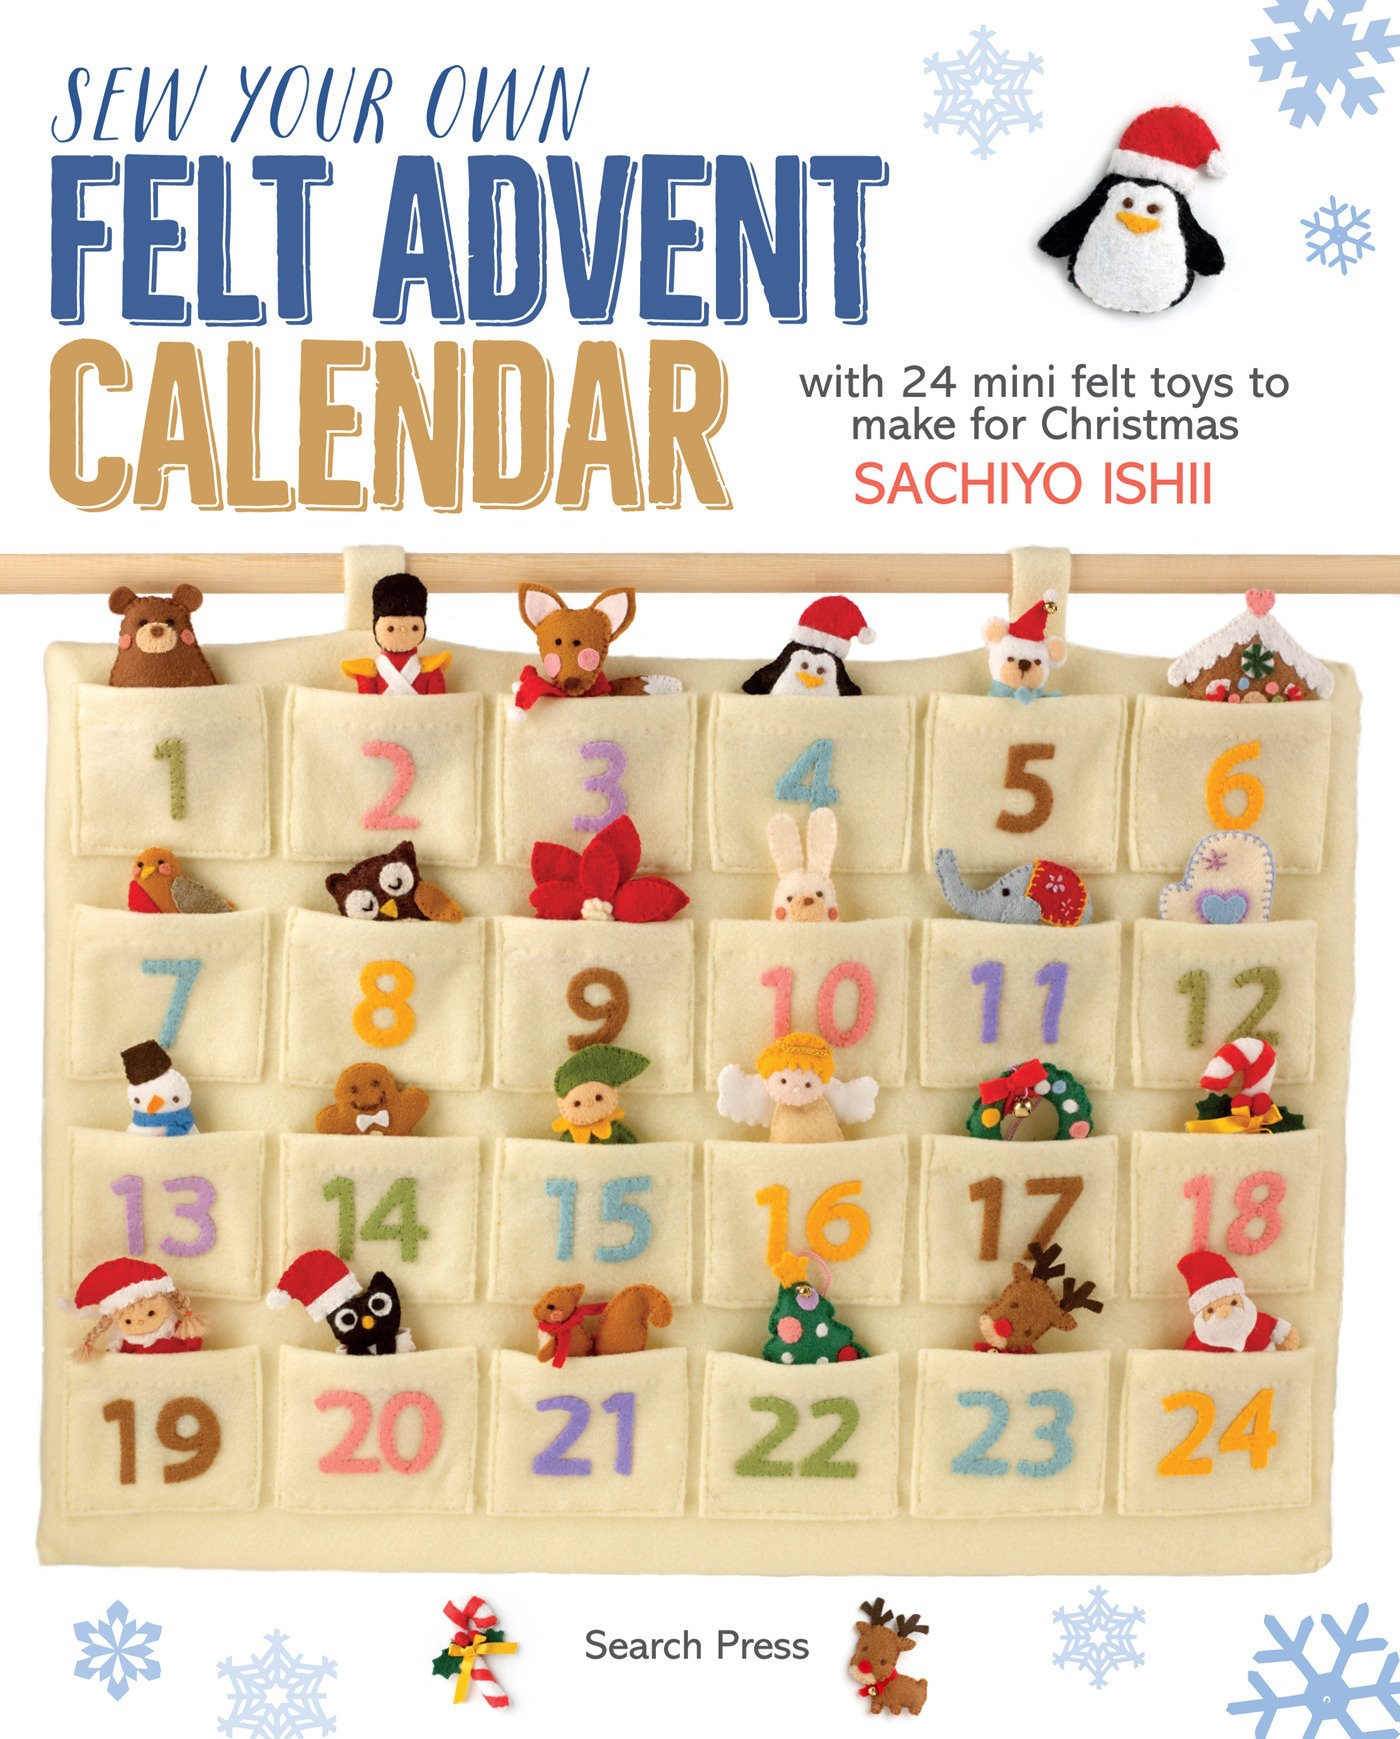 Sew Your Own Felt Advent Calendar With 24 Mini Felt Toys To Make